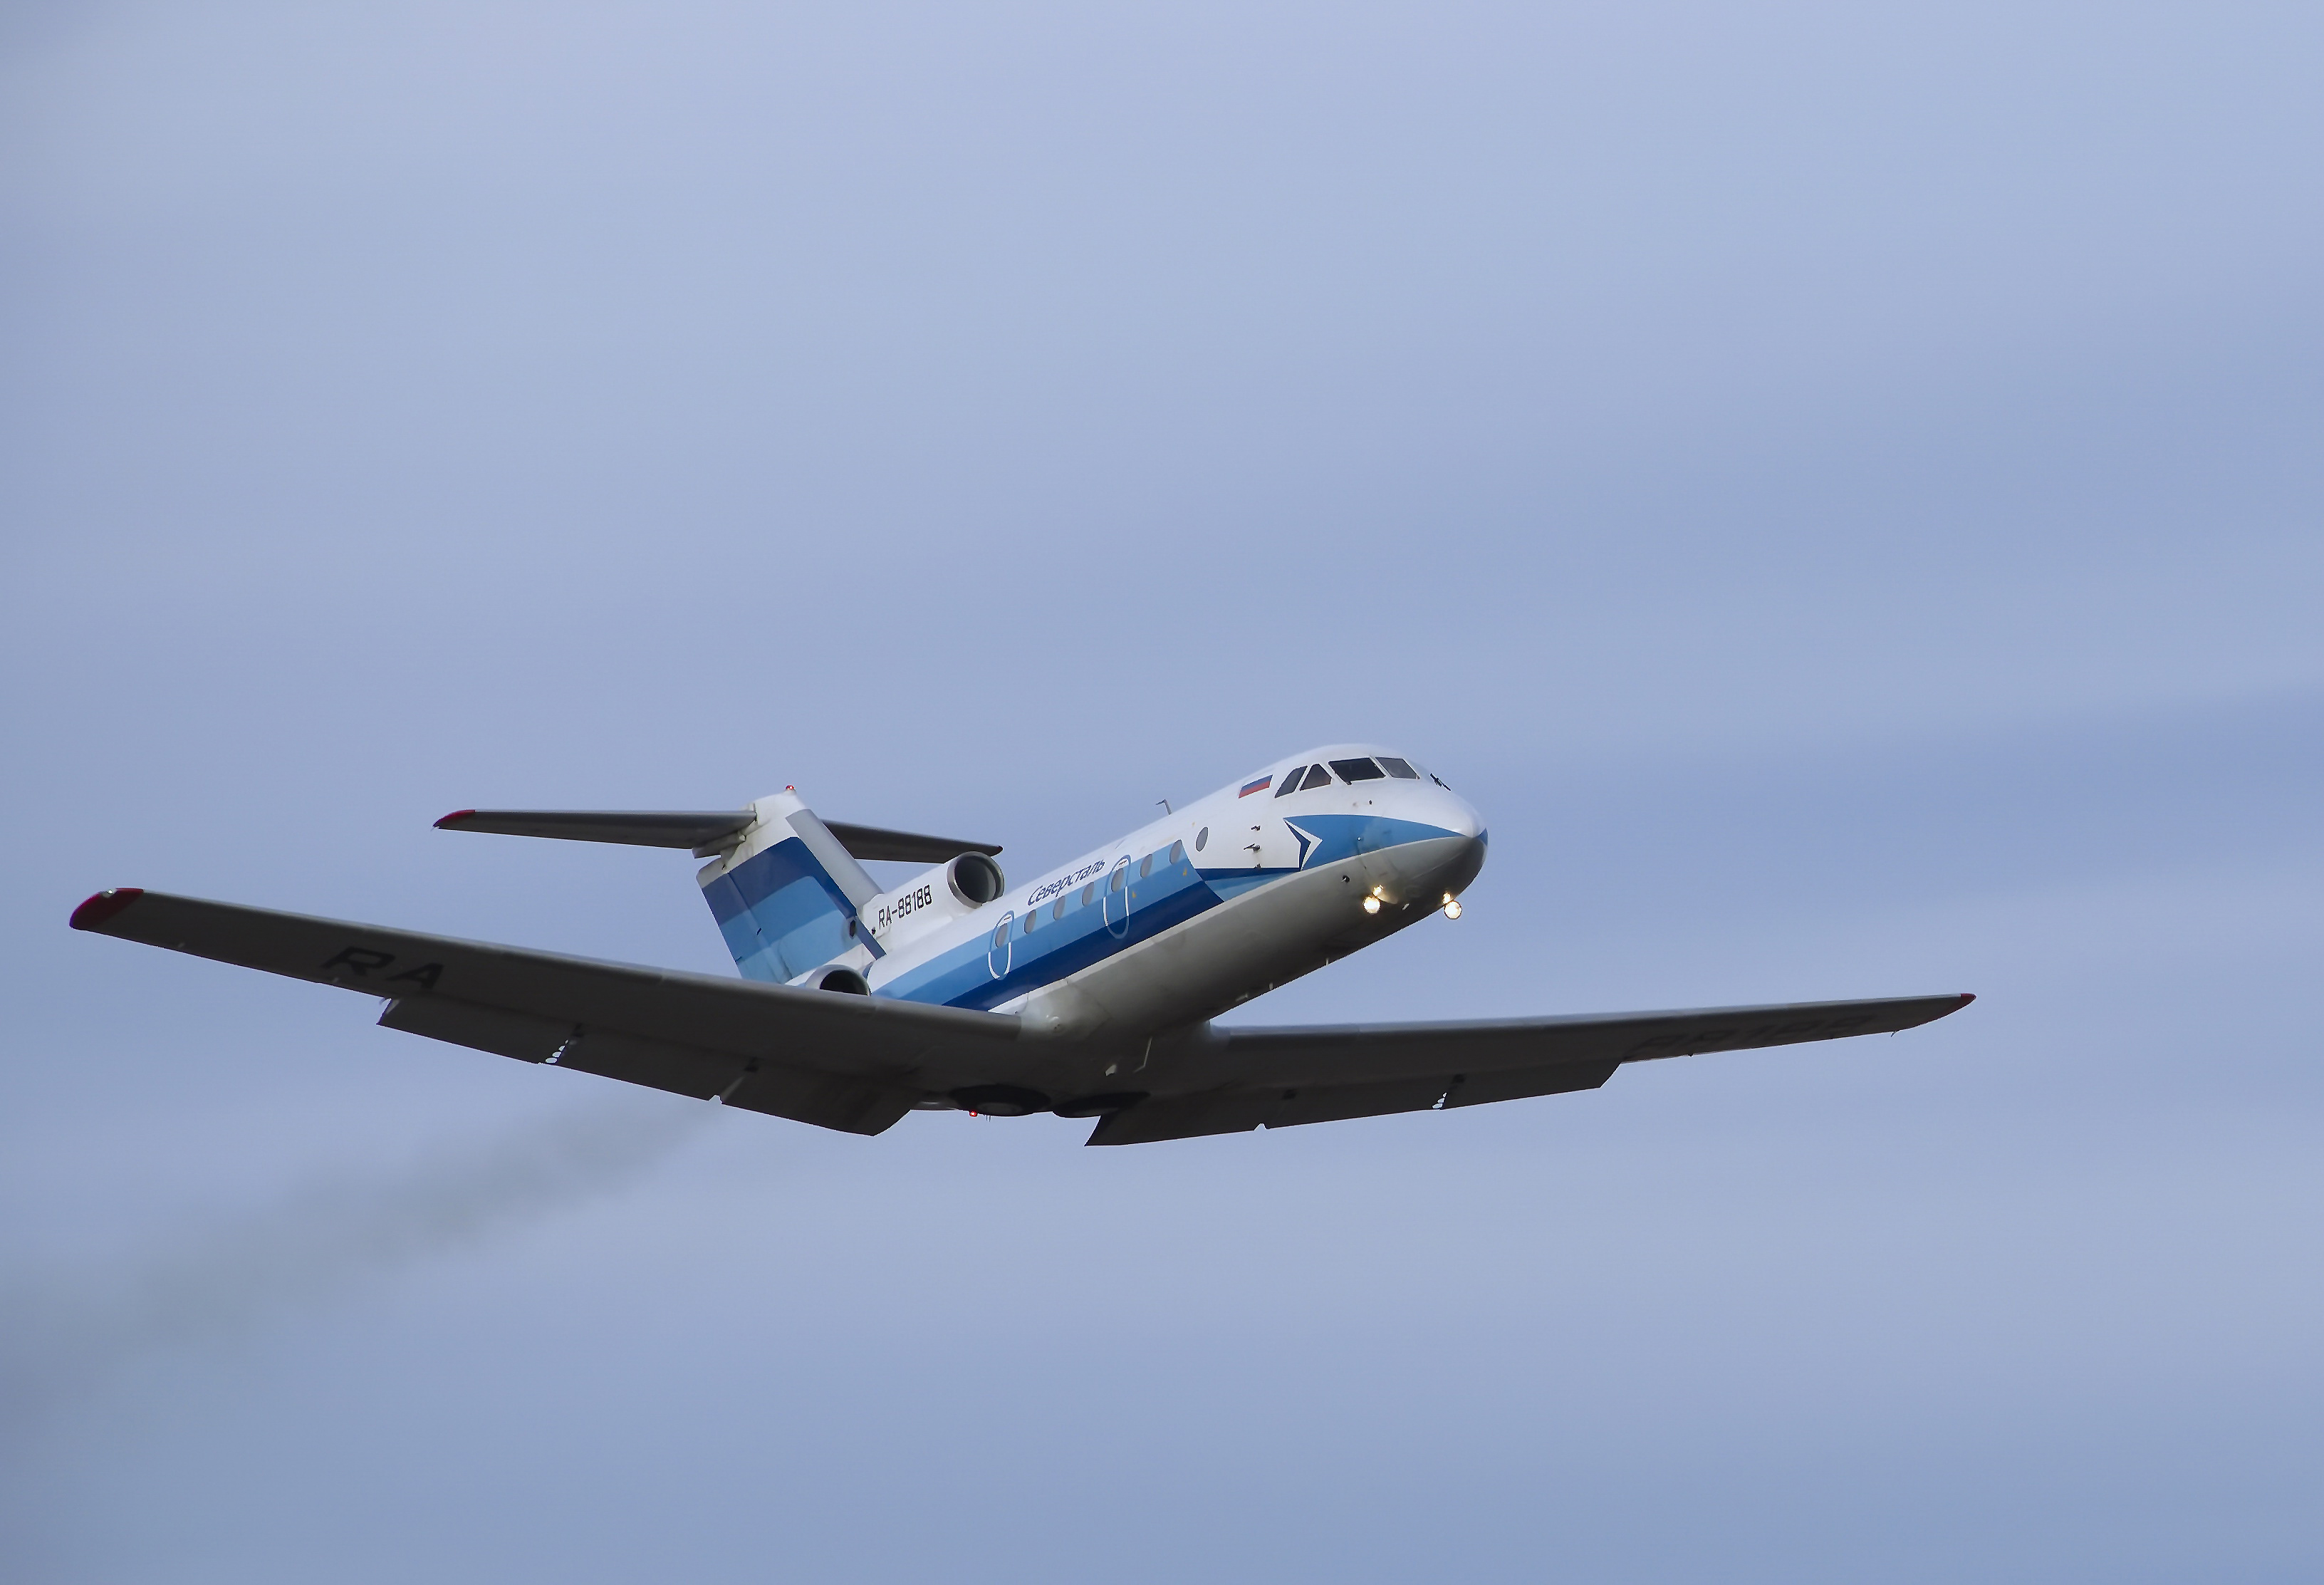 Yak-40 RA-88188 takes off from airport Veliky Ustyug